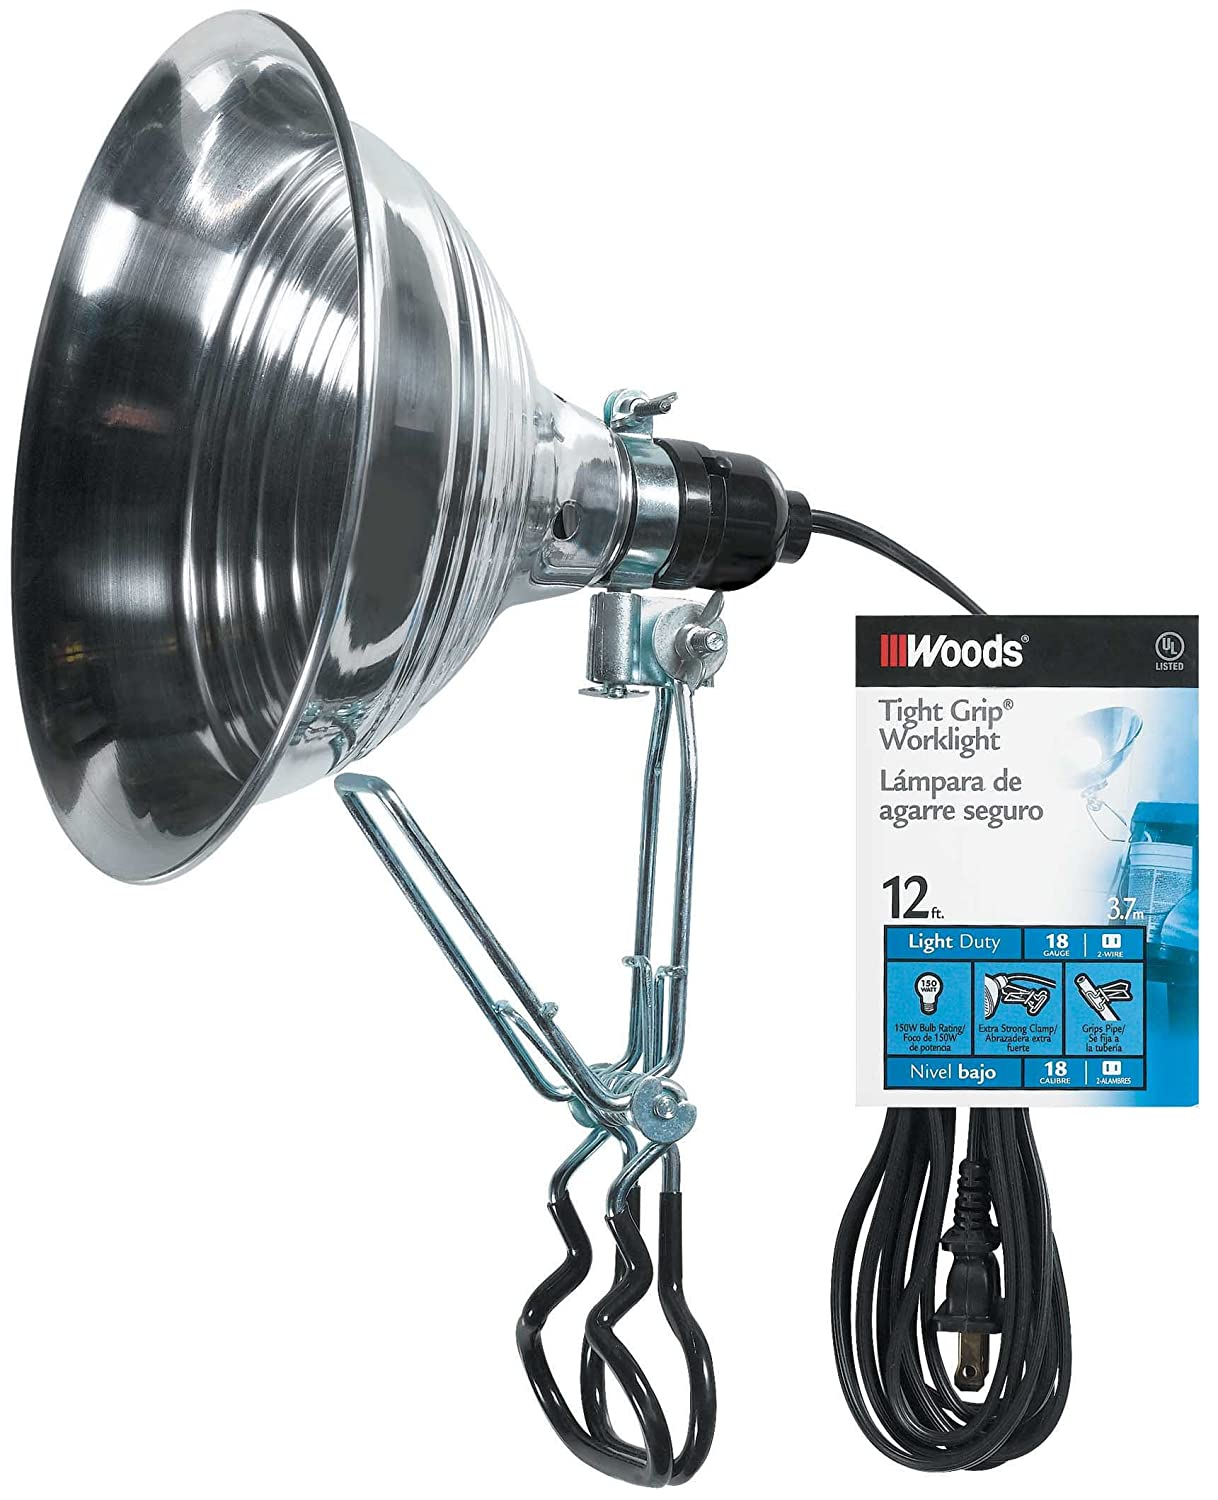 Woods 2839 18/2 Gauge SPT-2 Tight Grip 150-Watt Clamp Lamp with 8.5-Inch Reflector, 12-Foot - Clamp Light - Amazon.com